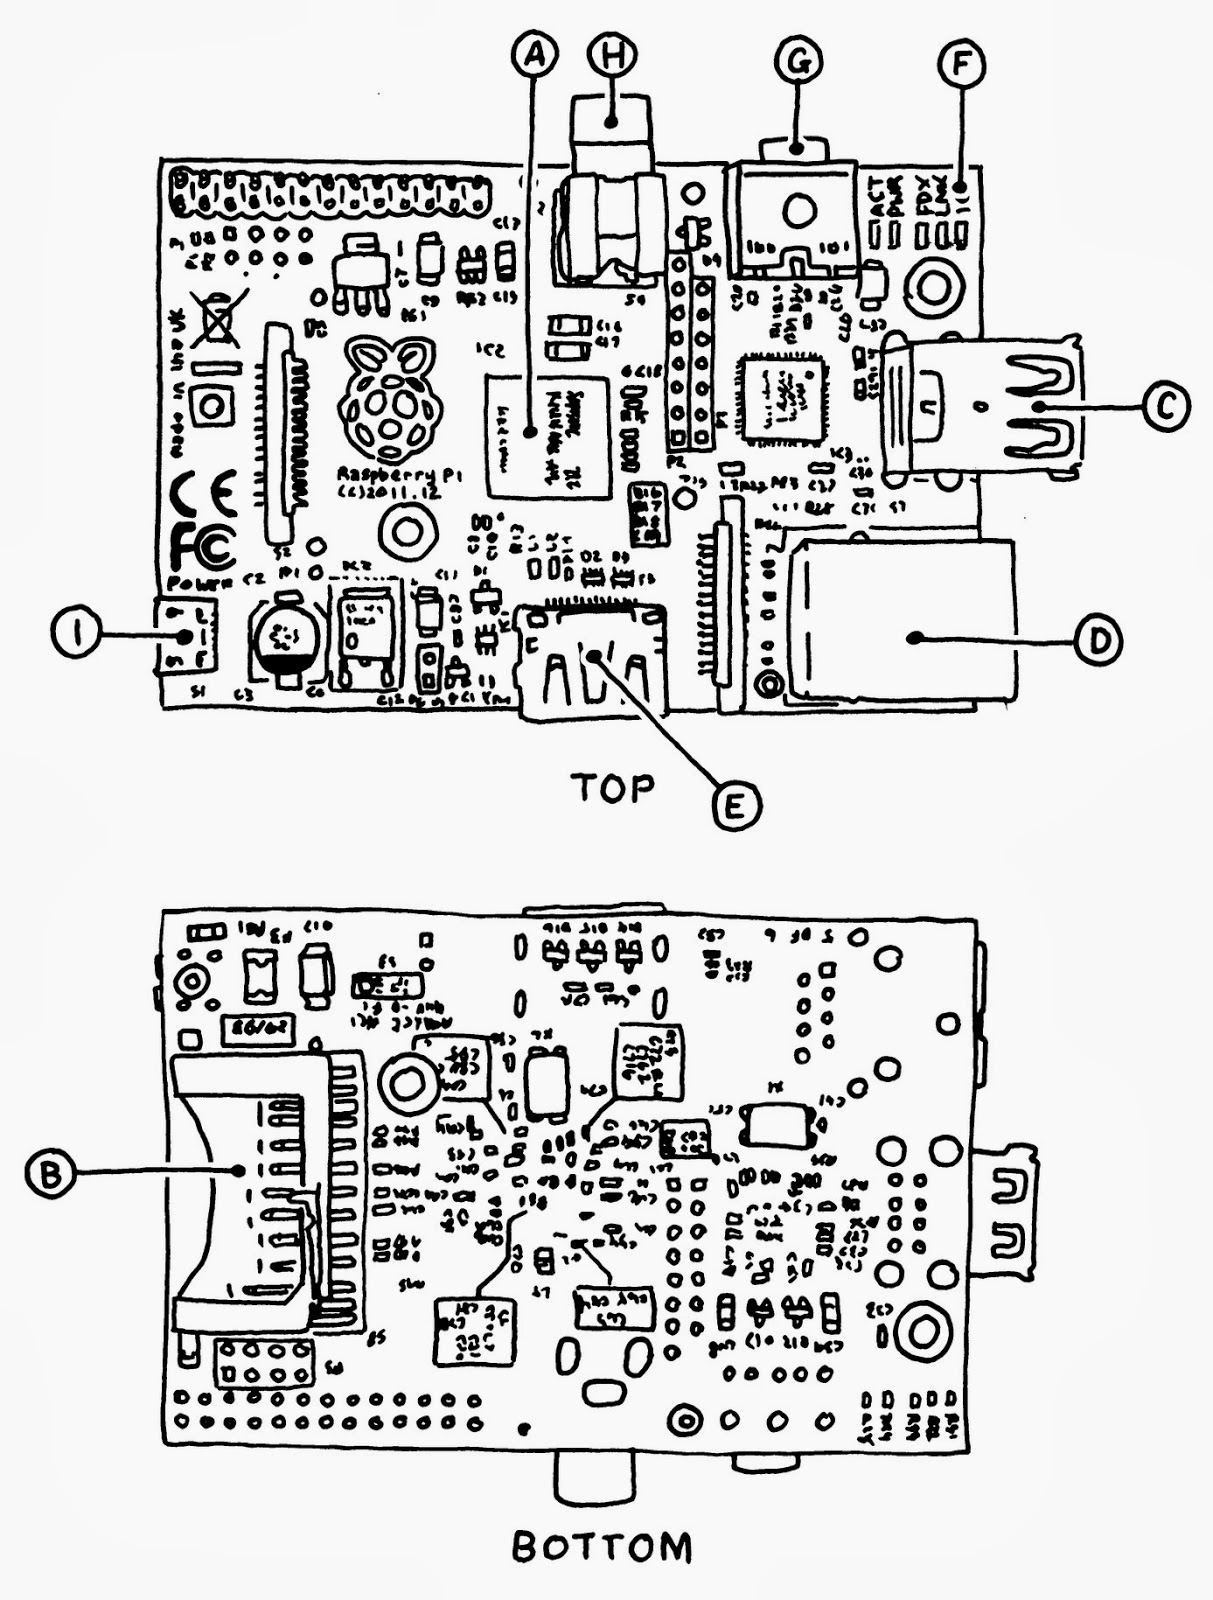 Parts Of Raspberry Pi